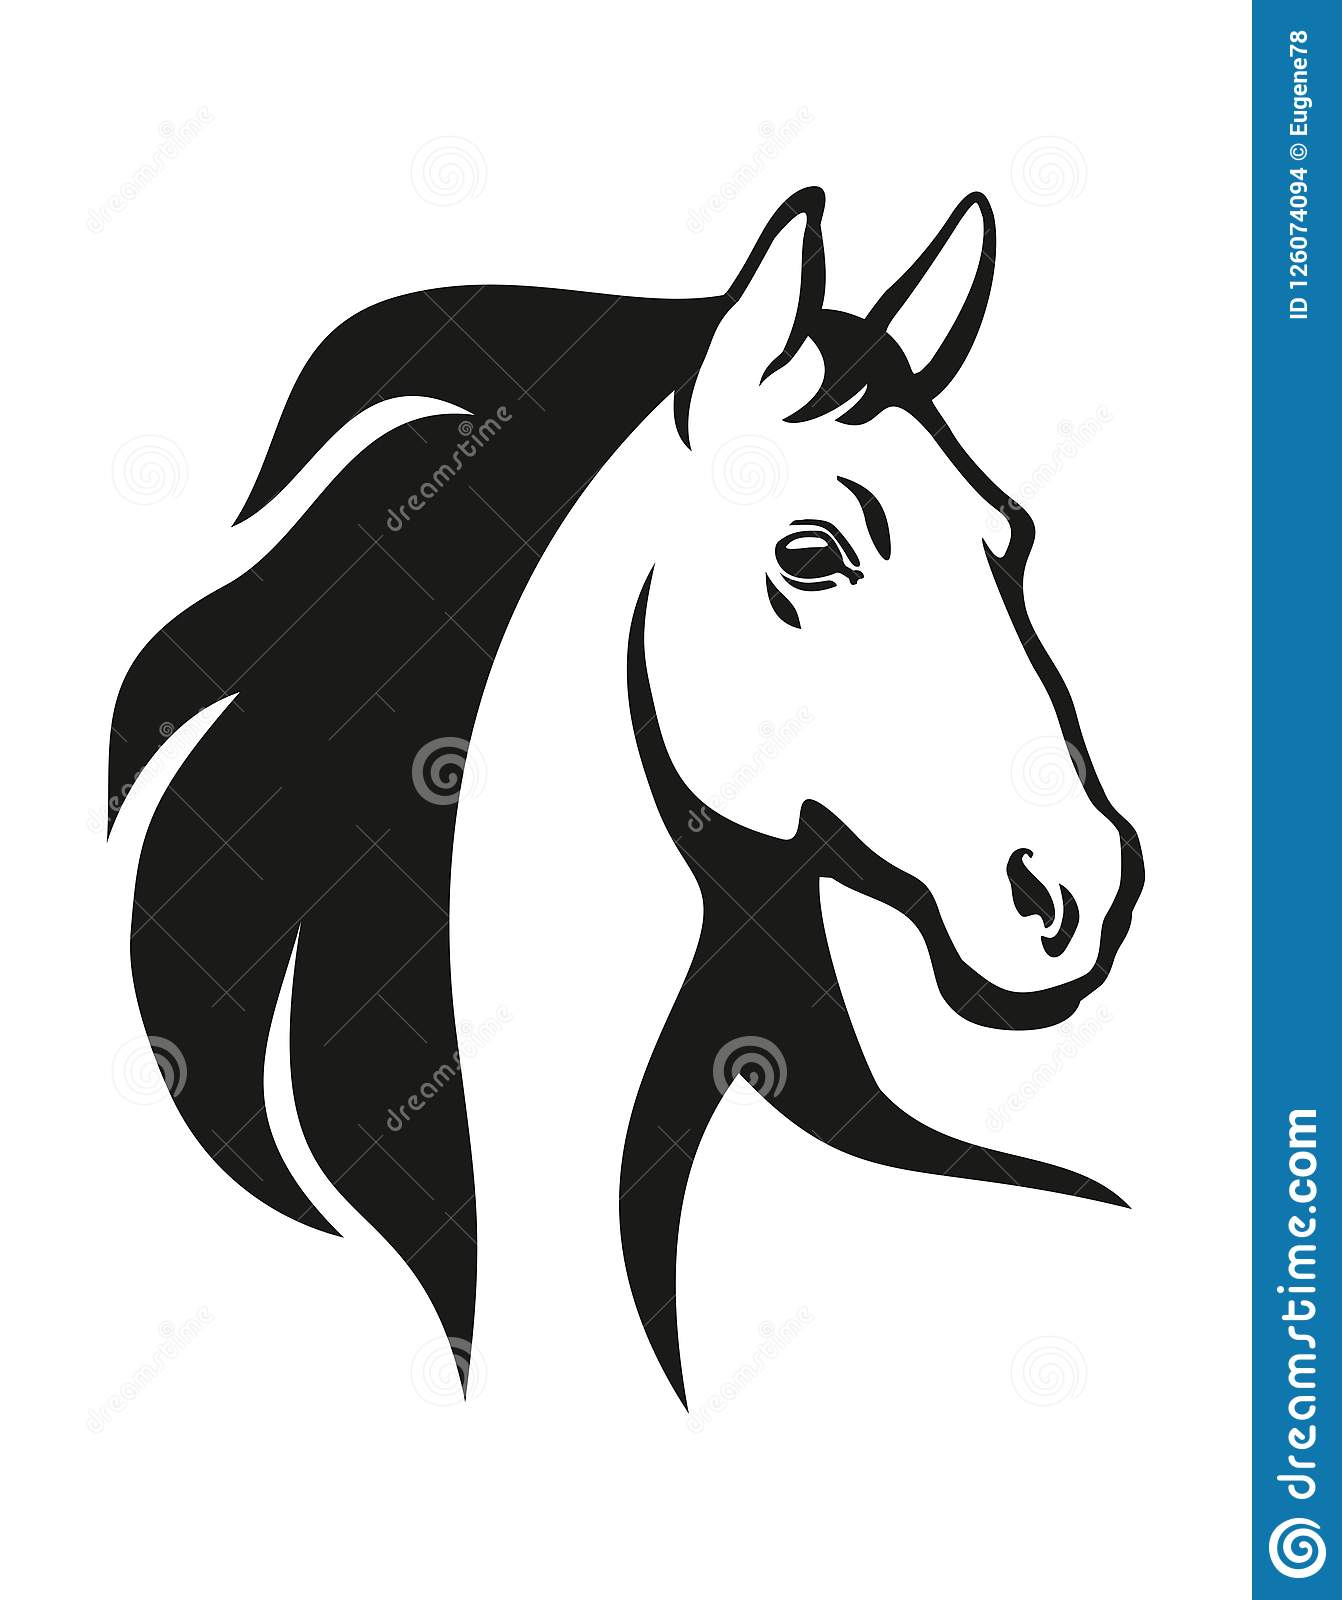 Horse Head Illustration Stock Vector Illustration Of Graphic 126074094